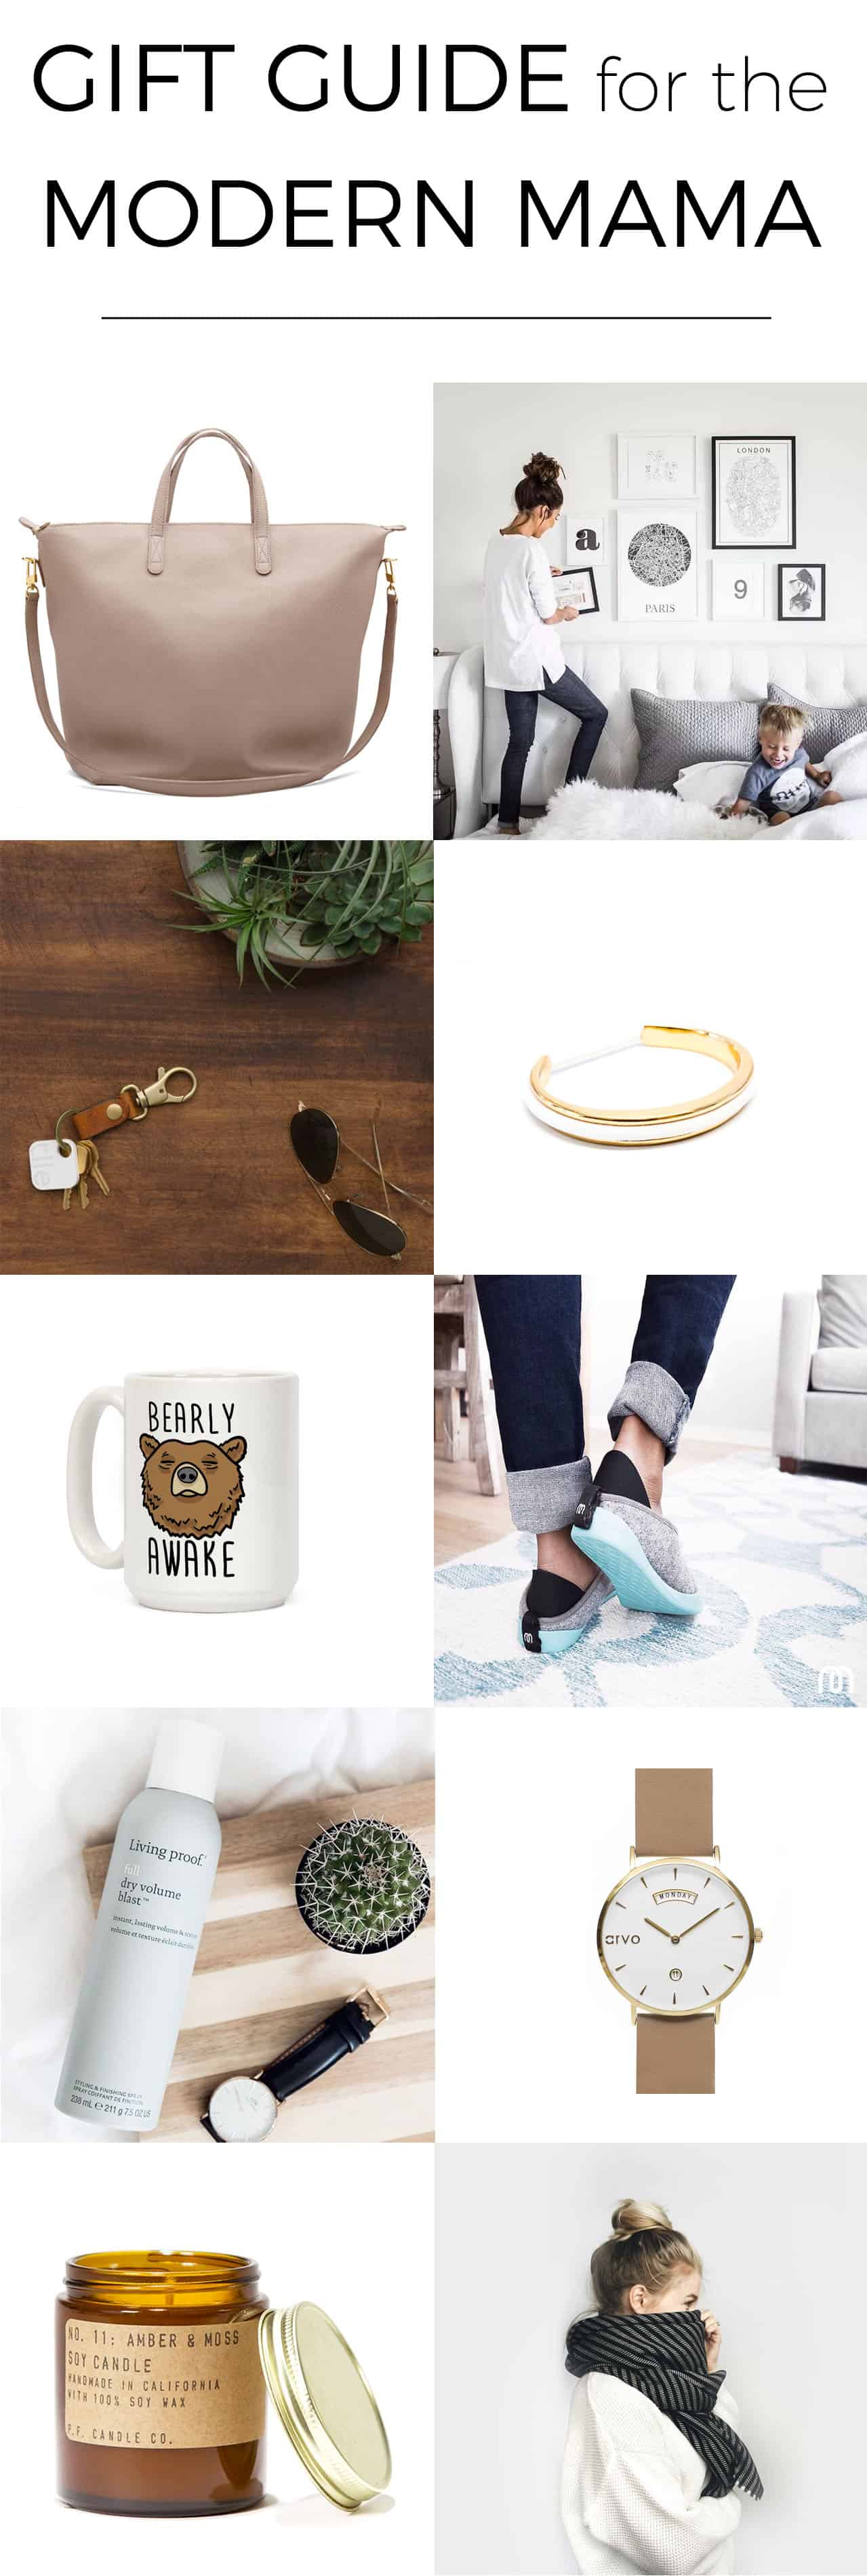 Gift Guide for the Modern Mama